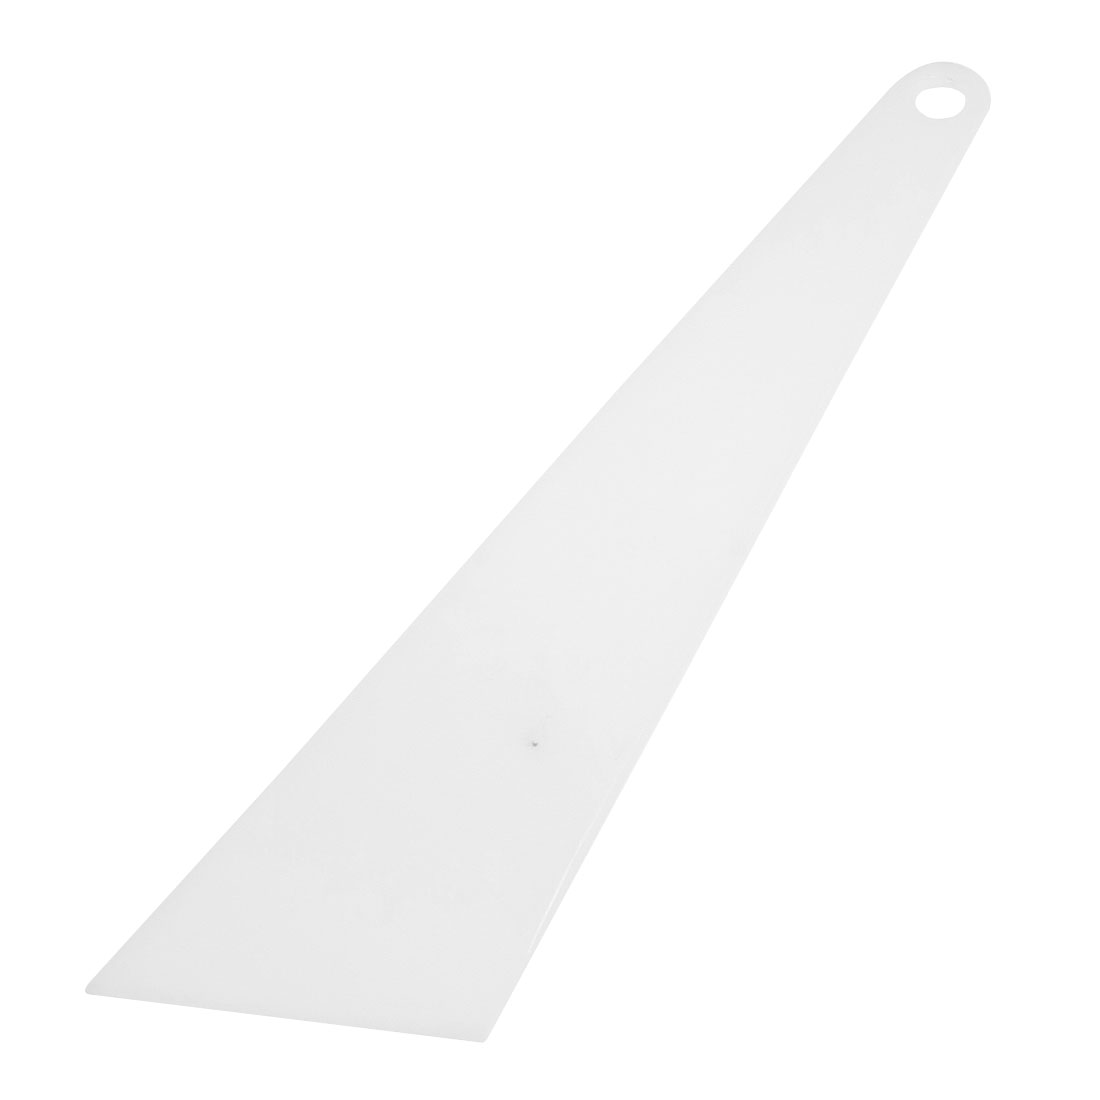 Car White Plastic Triangle Window Glass Cleaning Scraper Blade 9.4""